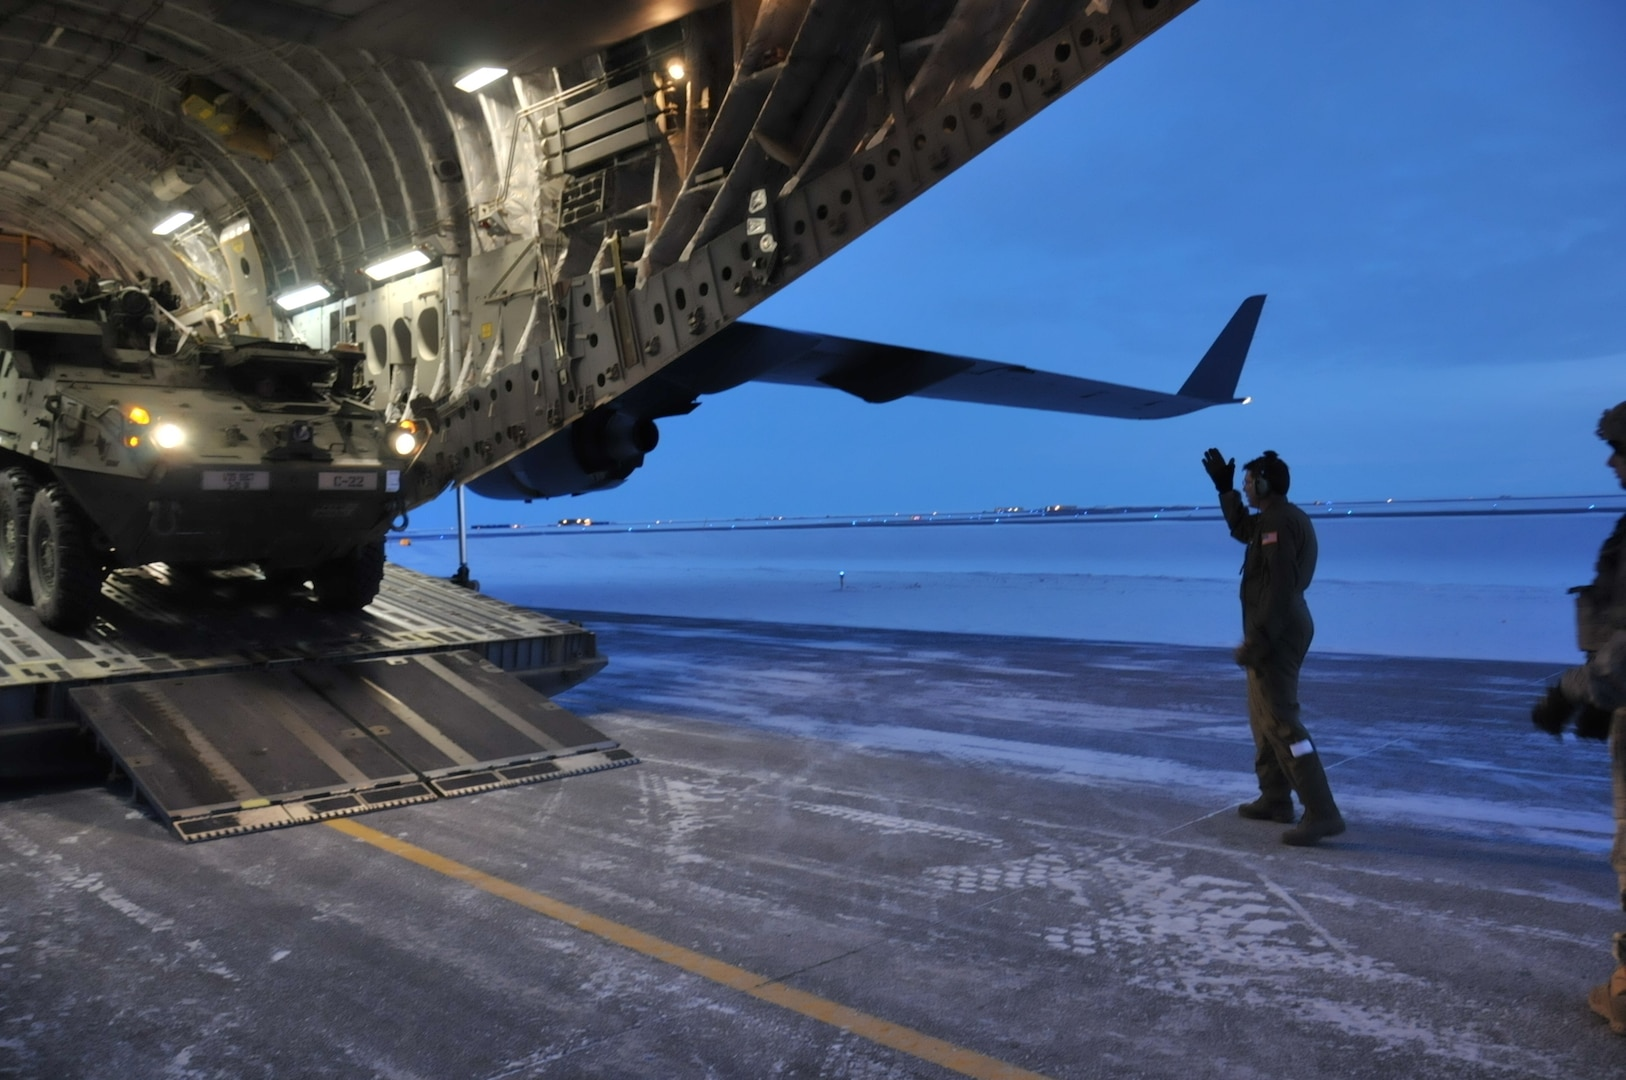 U.S. Army Alaska Strykers, assigned to Bravo Company, 3-21 Infantry Regiment, 1st Stryker Brigade Combat Team, offloads from an Air Force C-17 Globemaster above the Arctic Circle as part of Operation Arctic Pegasus at Deadhorse, Alaska, Nov. 3, 2015.  Arctic Pegasus is U.S. Army Alaska's annual joint exercise designed to test rapid-deployment and readiness in the Arctic. The exercise marks the first time Strykers have deployed above the Arctic Circle. The 1st Stryker Brigade Combat Team is the Army's northernmost unit and has the unique capability to deploy and operate in extreme cold regions. (Photo by Sgt. 1st Class Joel Gibson, U.S. Army Alaska Public Affairs)